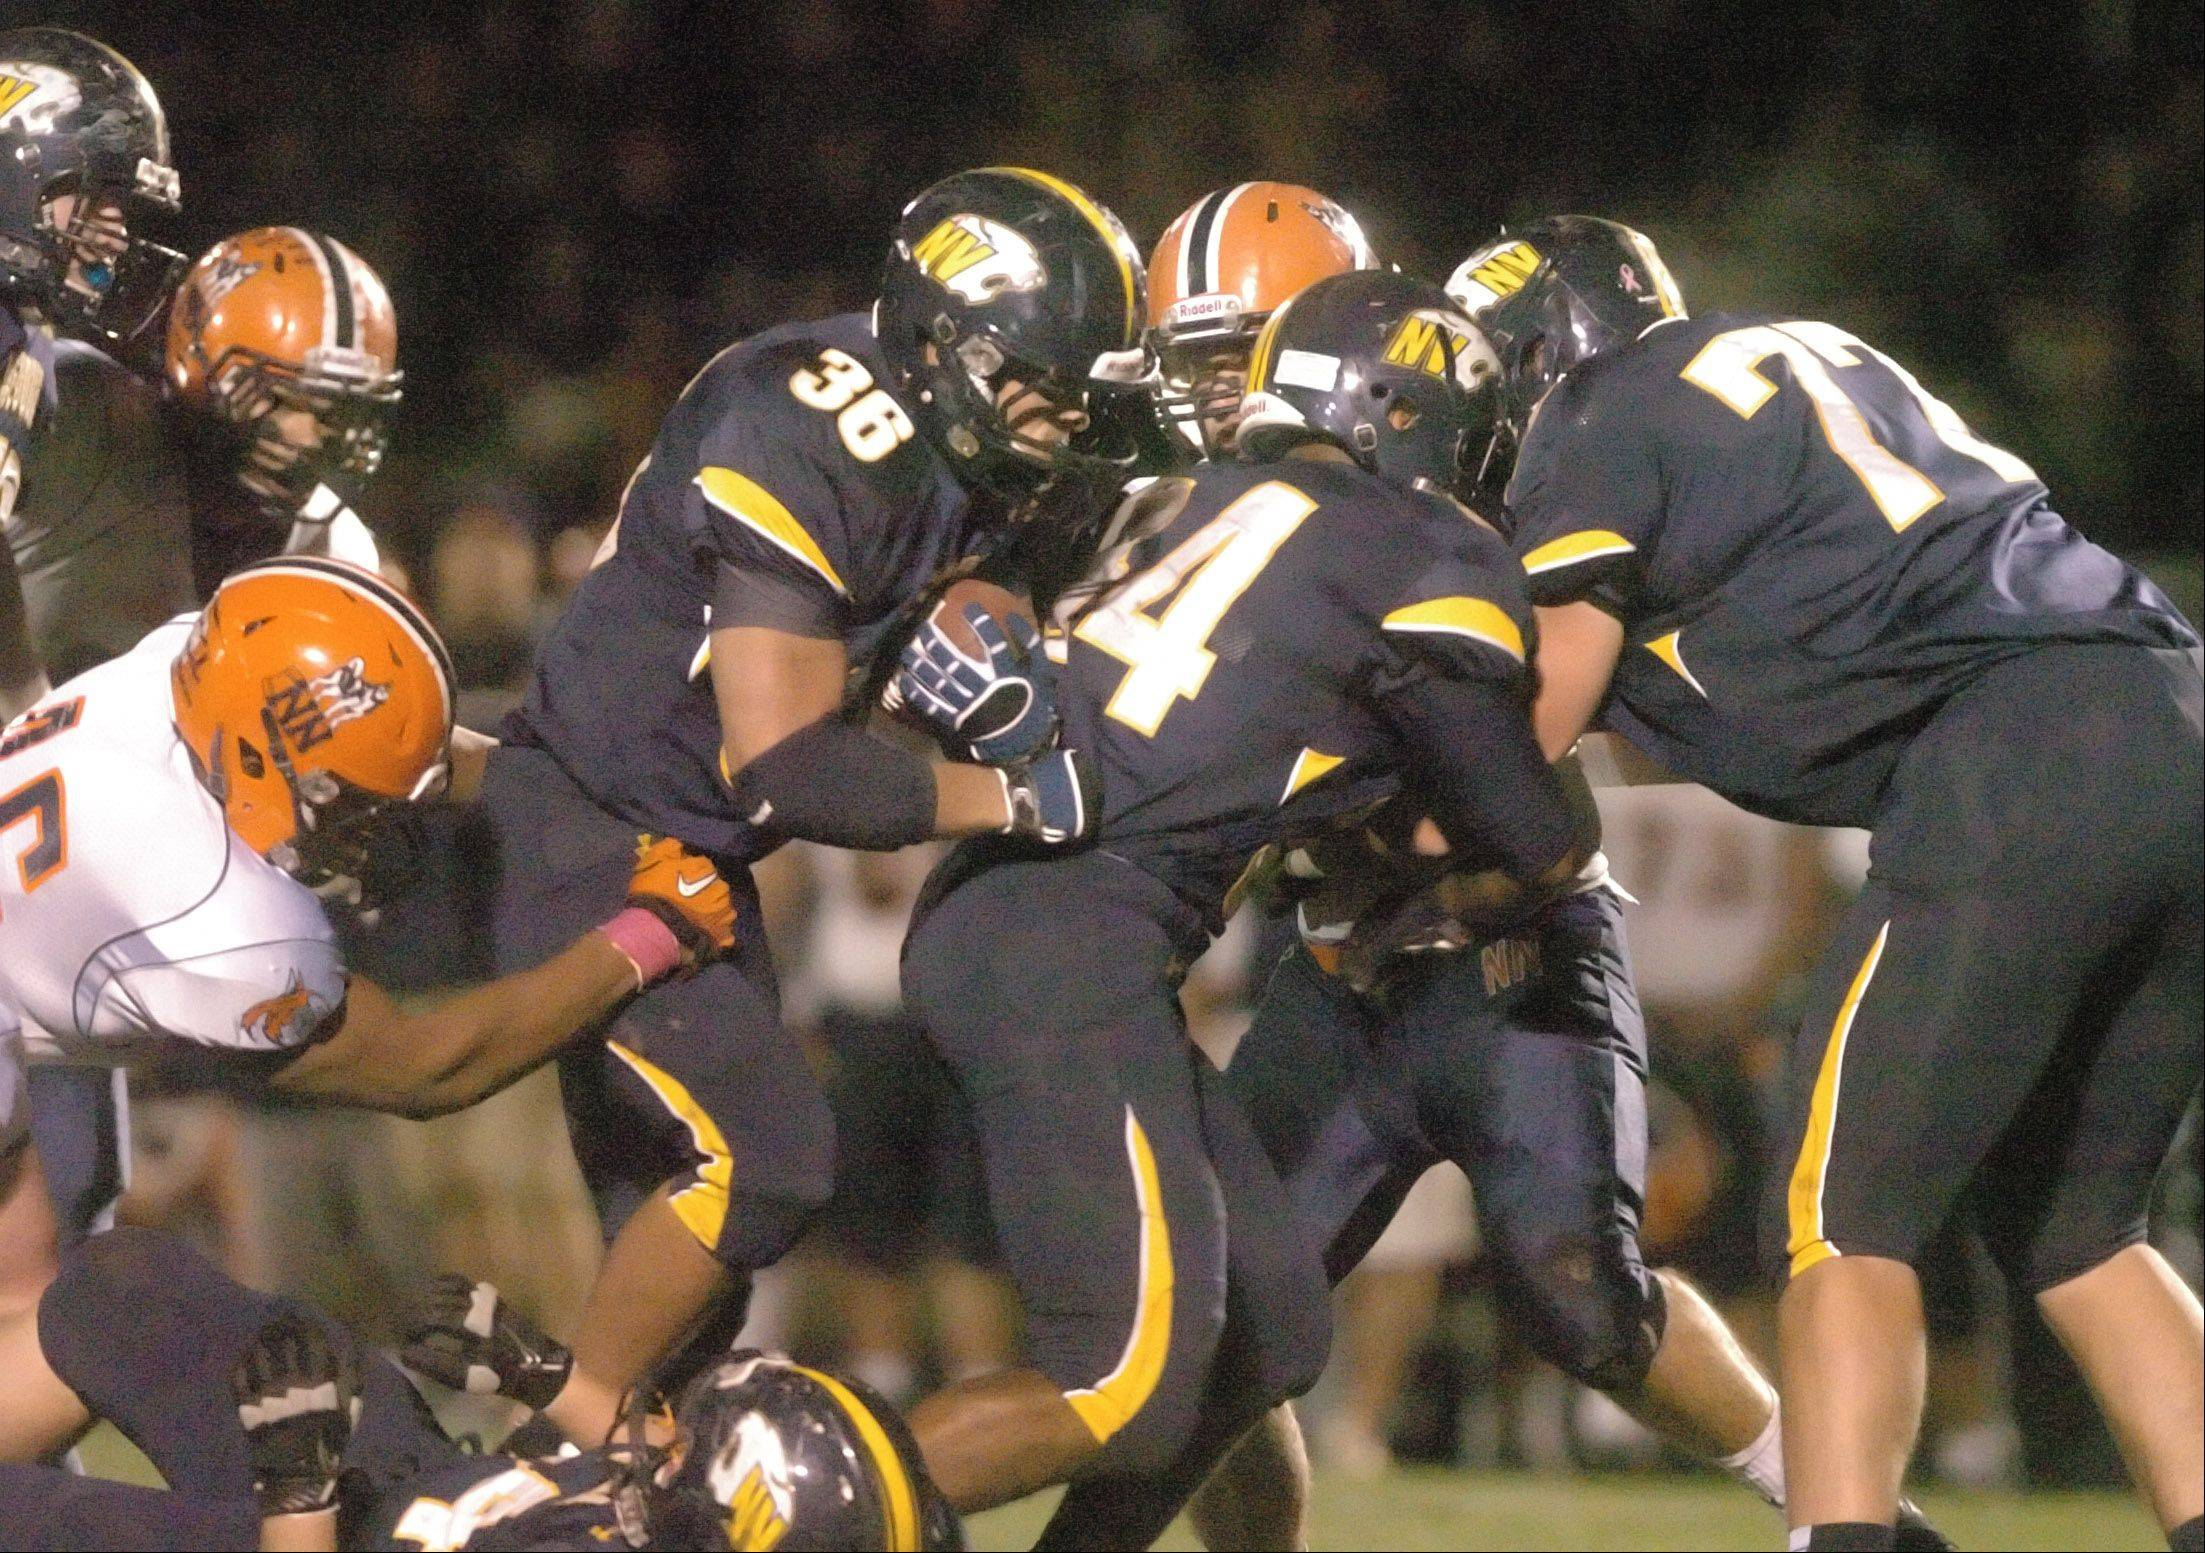 Joey Rhattigan of Neuqua ,center, moves the ball during the Naperville North at Neuqua Valley football game Friday.